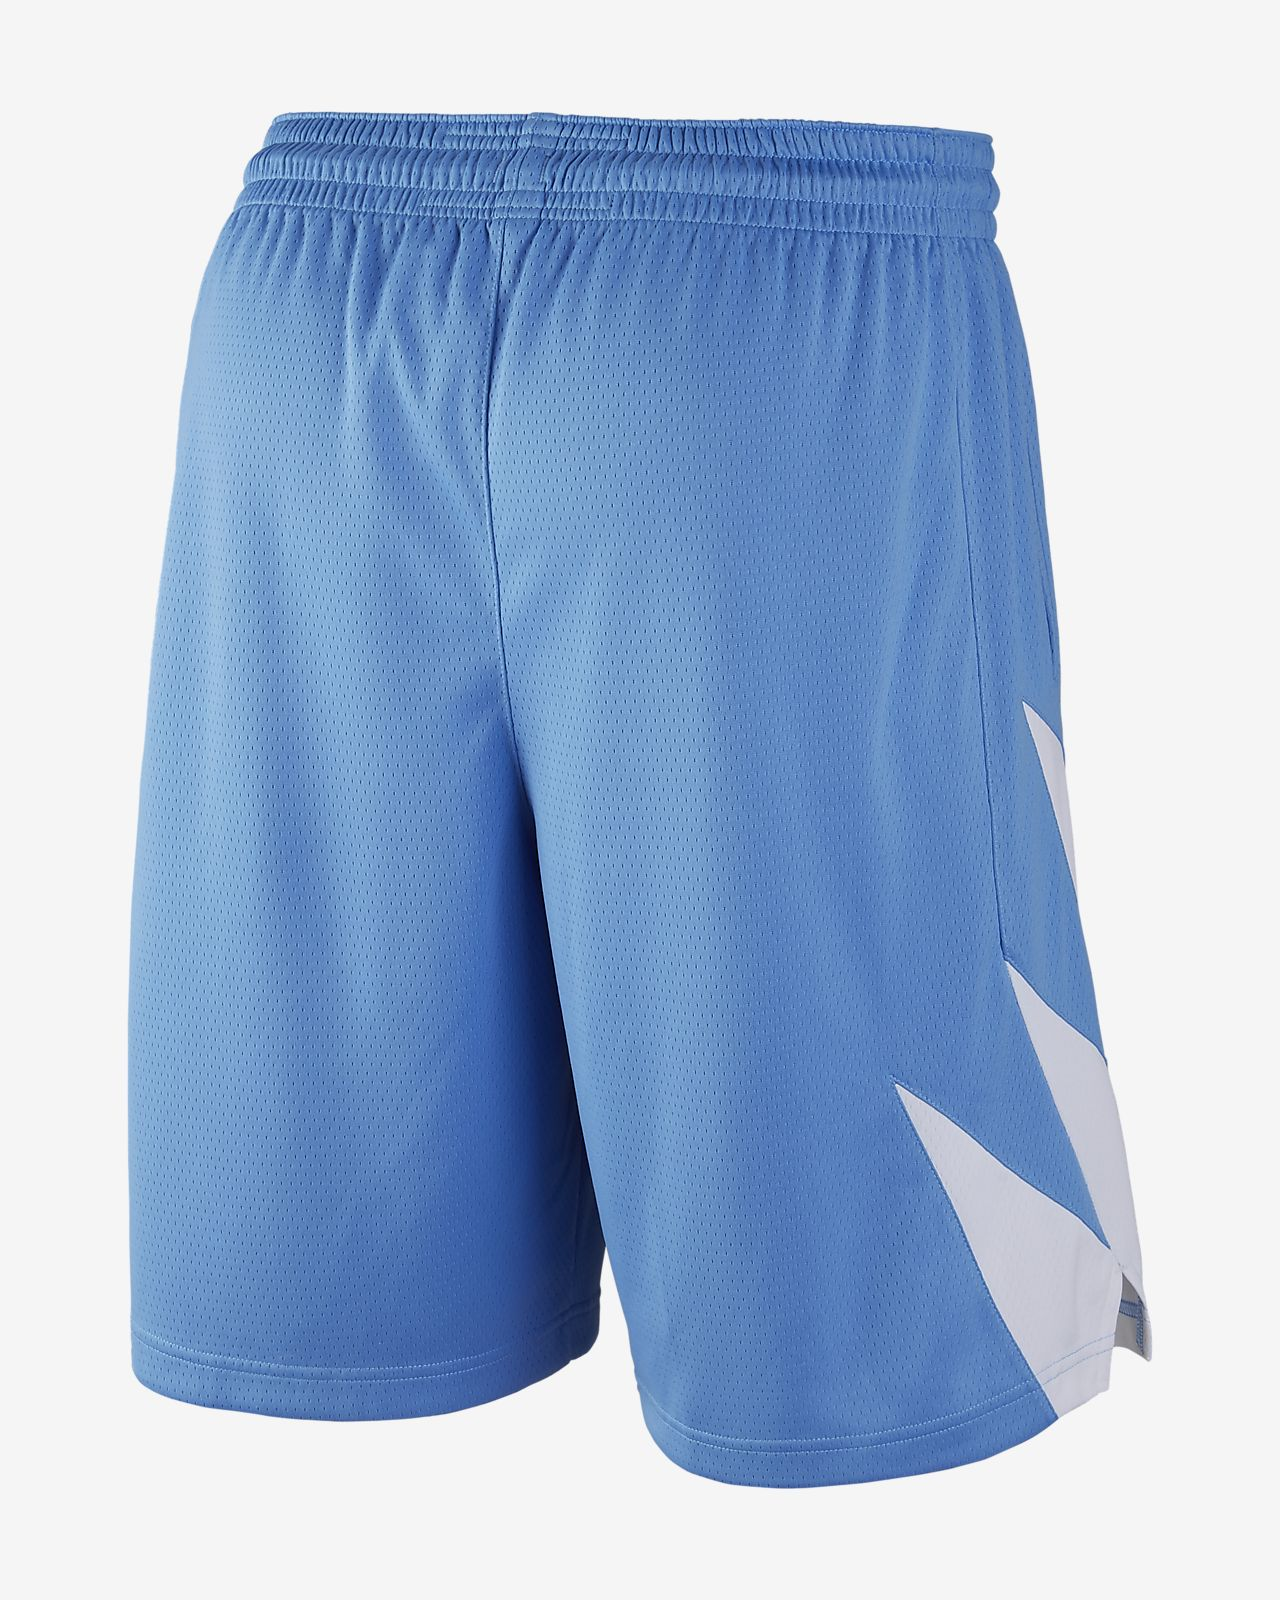 ... LA Clippers Nike City Edition Swingman Men's NBA Shorts